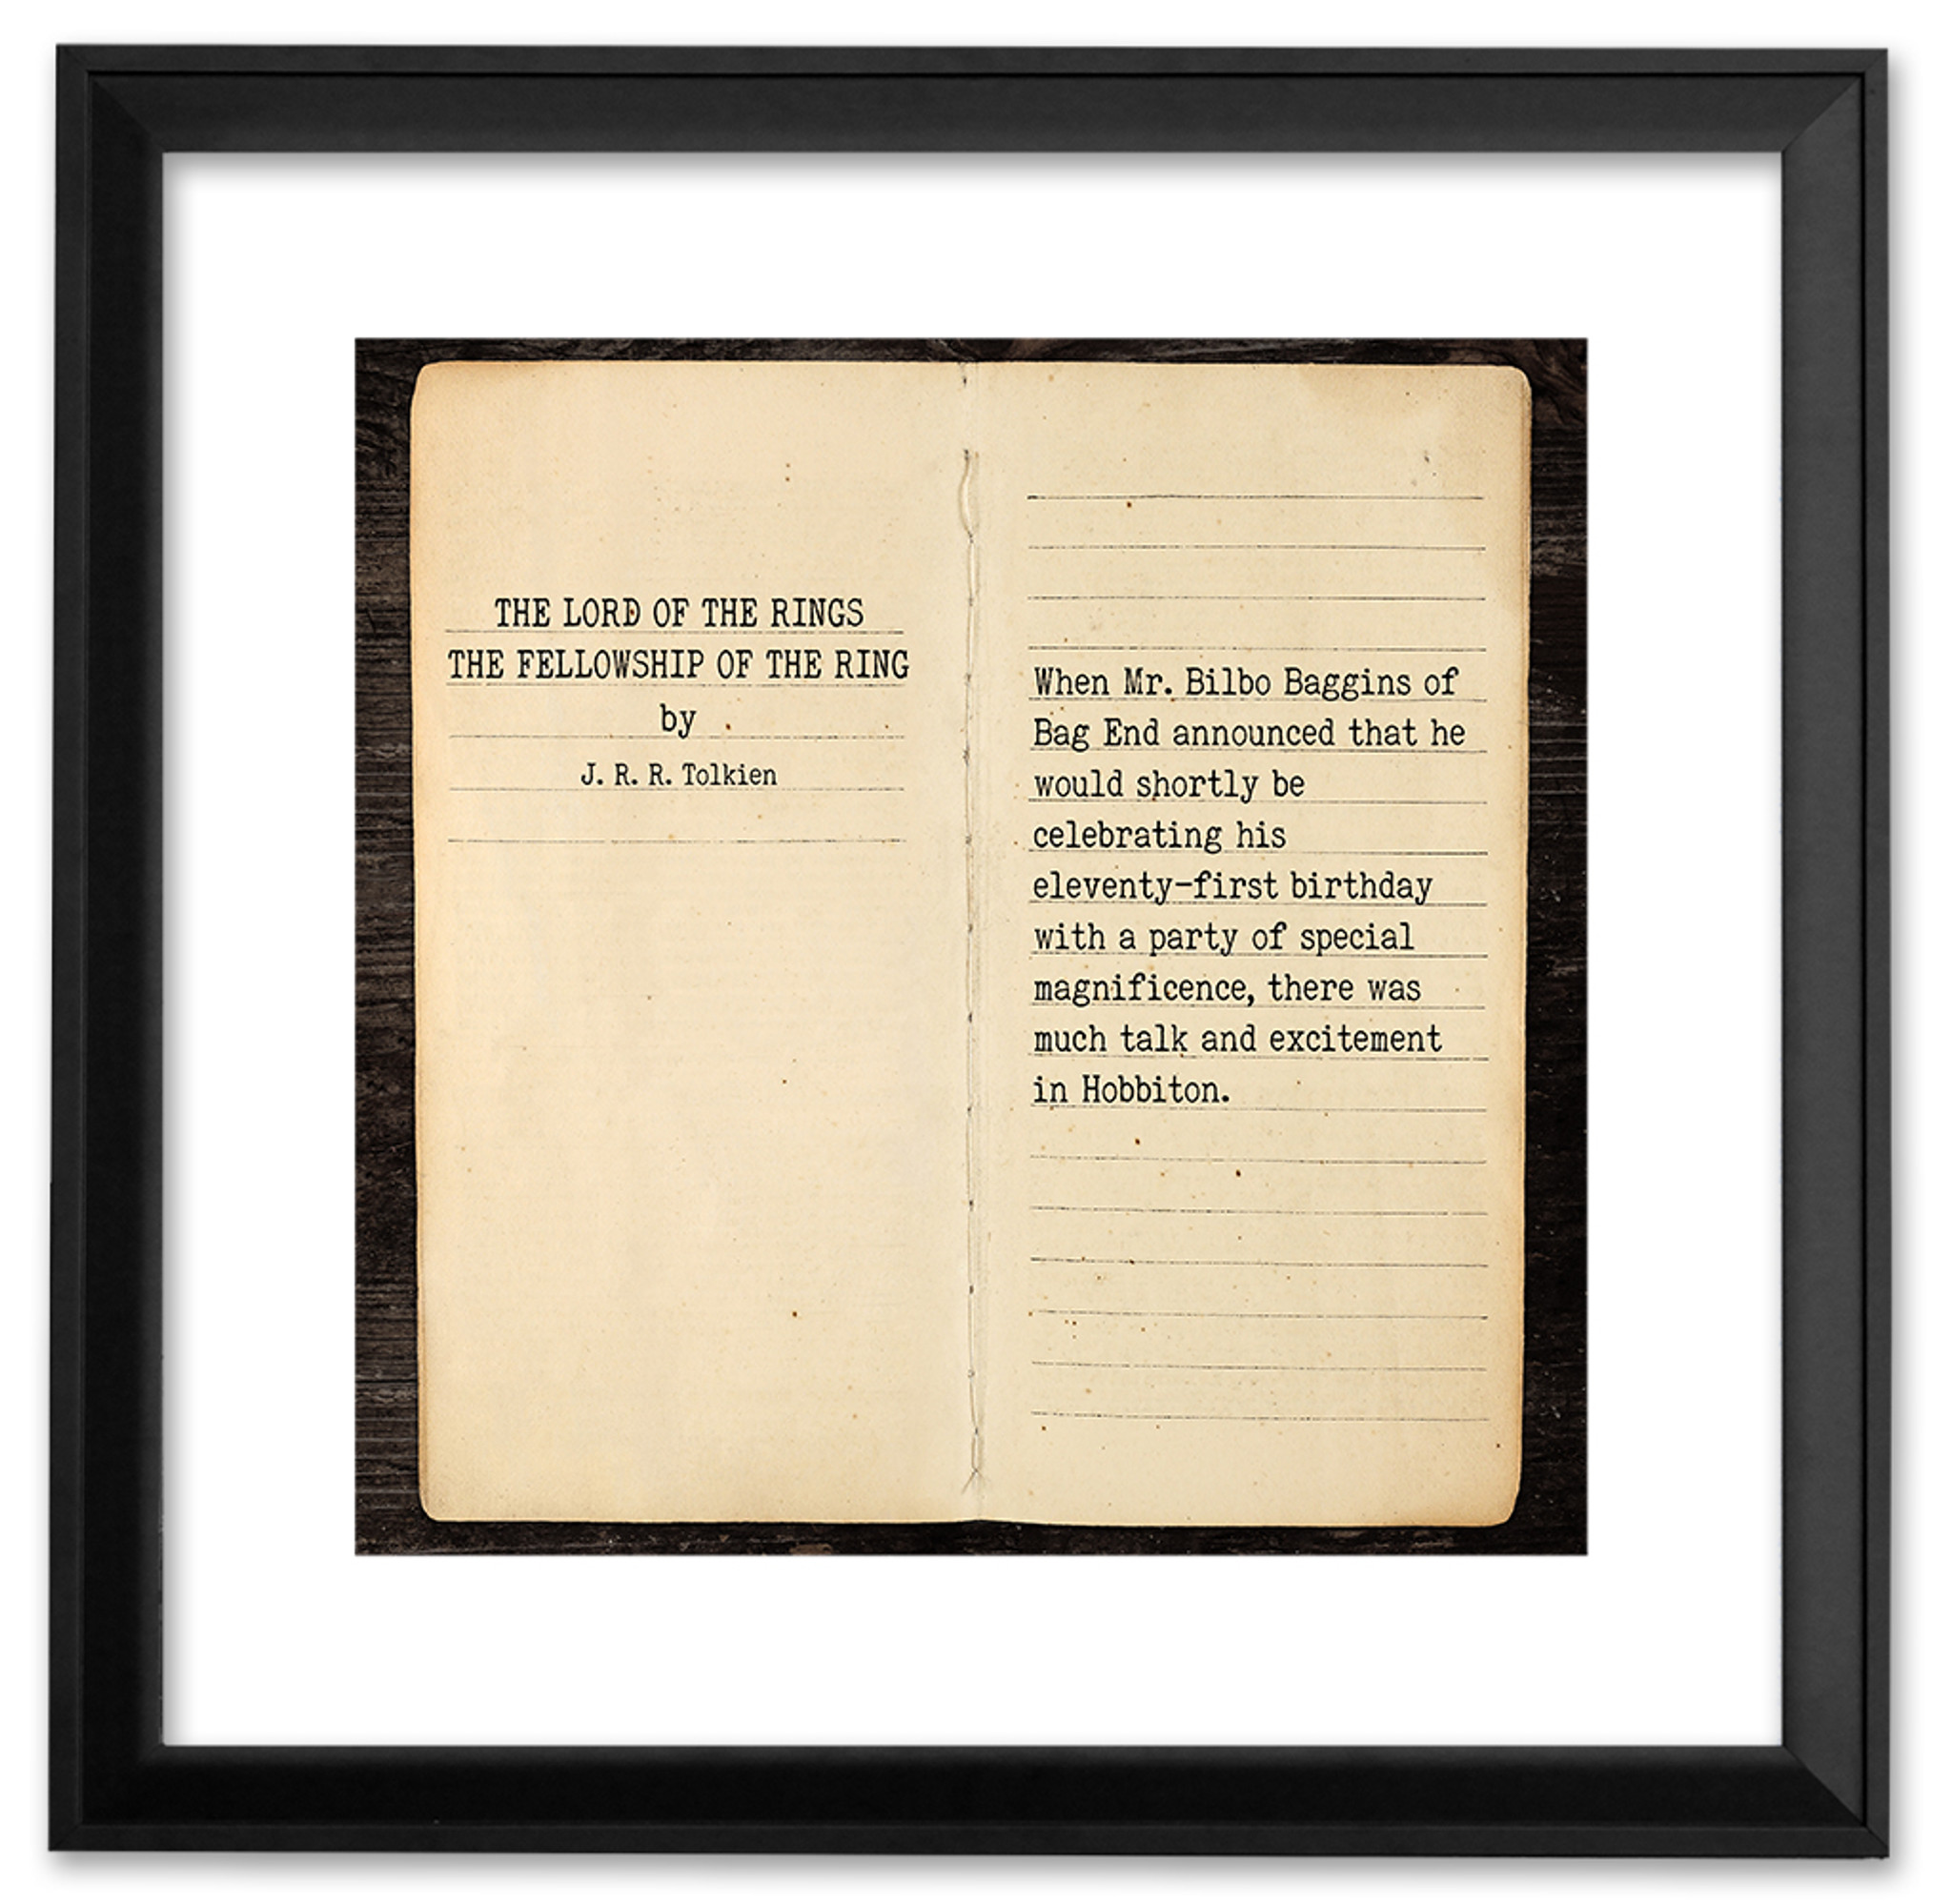 The Lord Of The Rings J R R Tolkien Opening Line Children S Literary Quote Print Fine Art Paper Laminated Or Framed Multiple Sizes Available For Home Office Or School Echo Lit